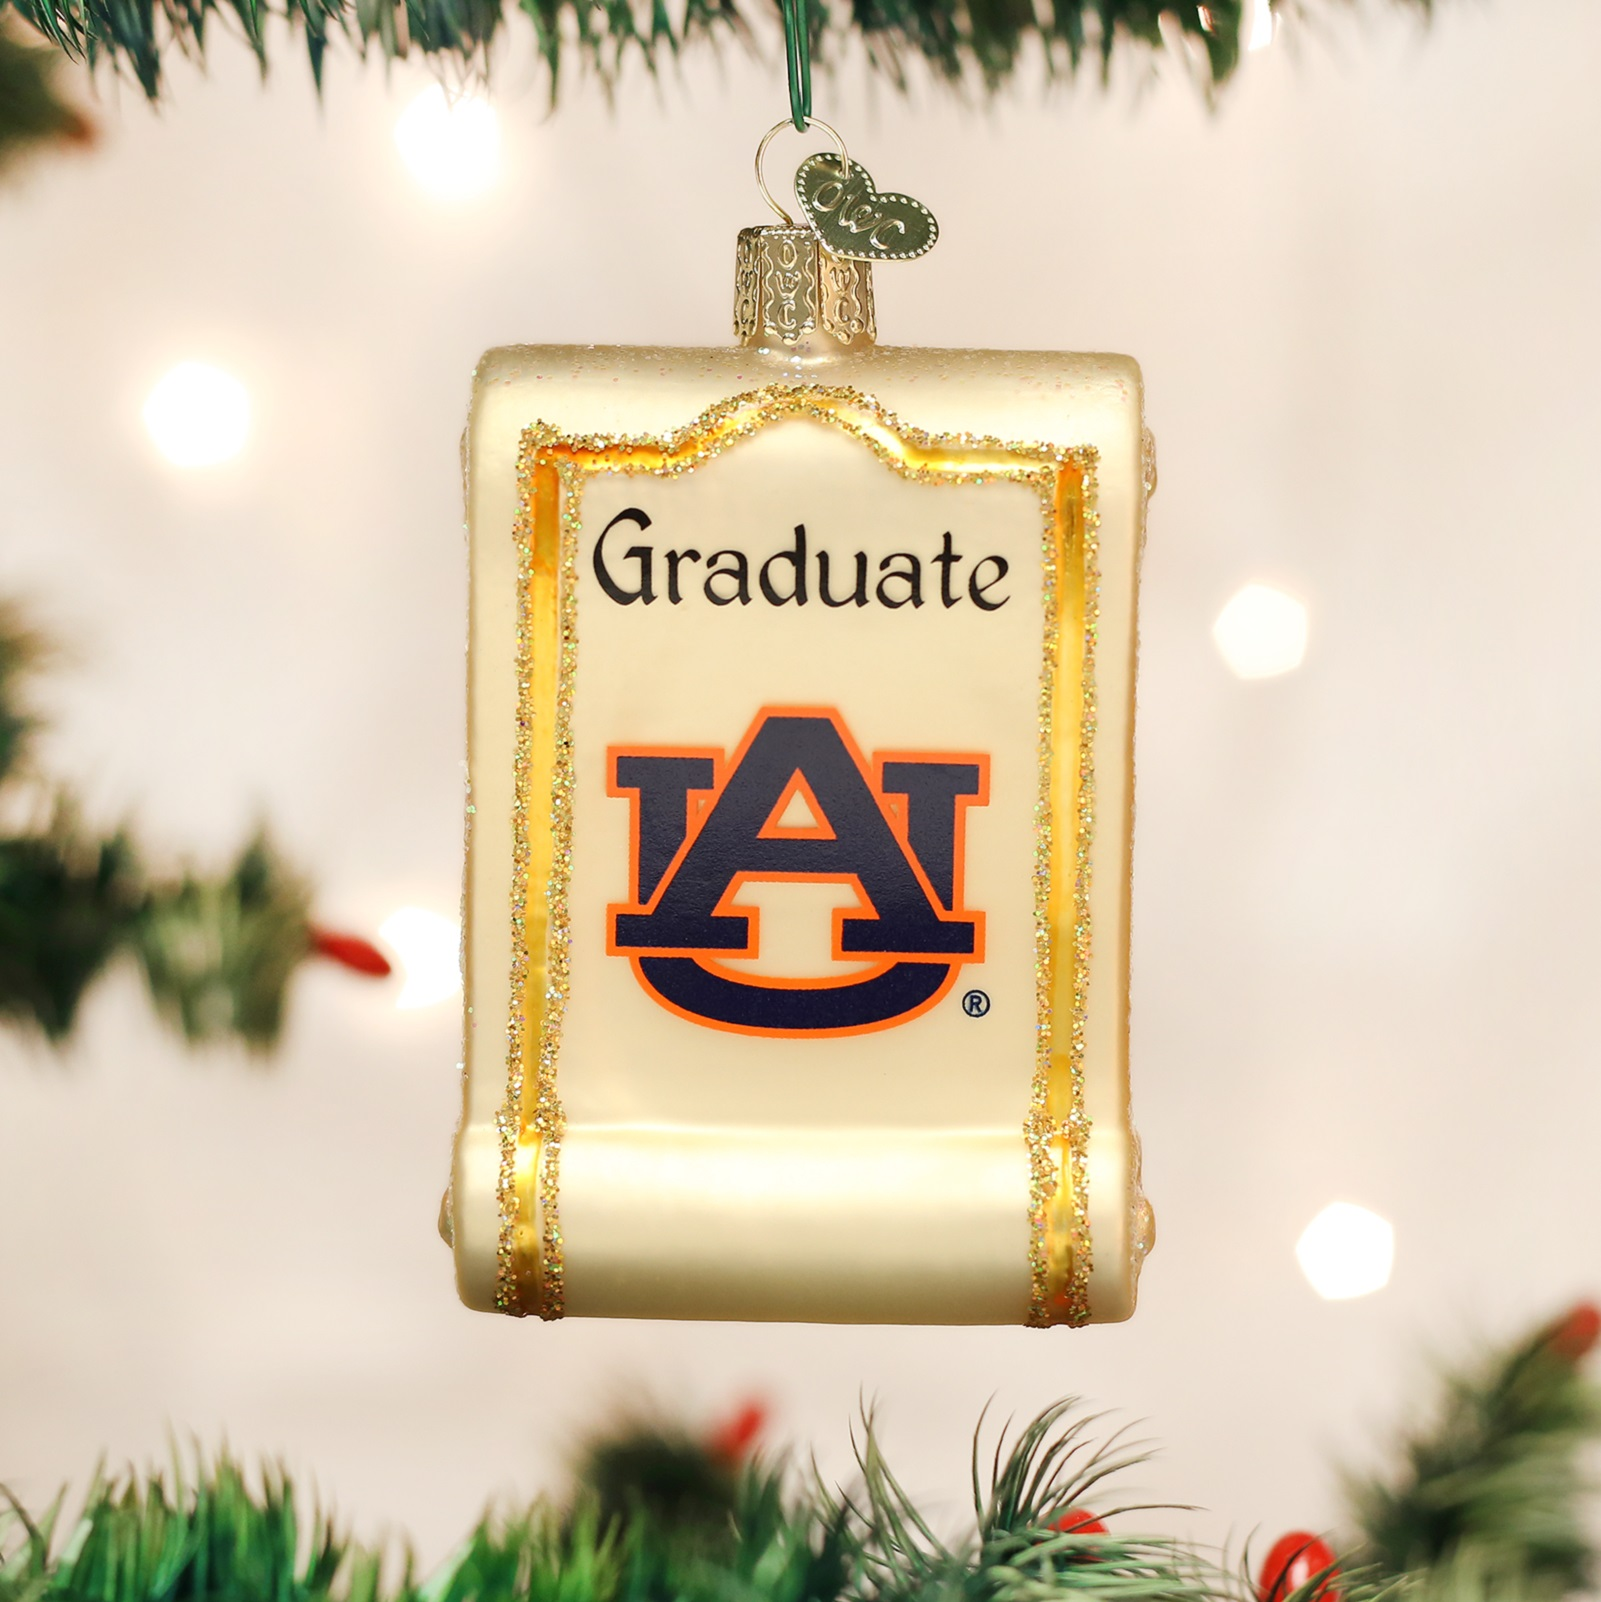 University of michigan christmas ornaments - Old World Christmas Auburn University Tigers Au Diploma Glass Ornament 62412 New